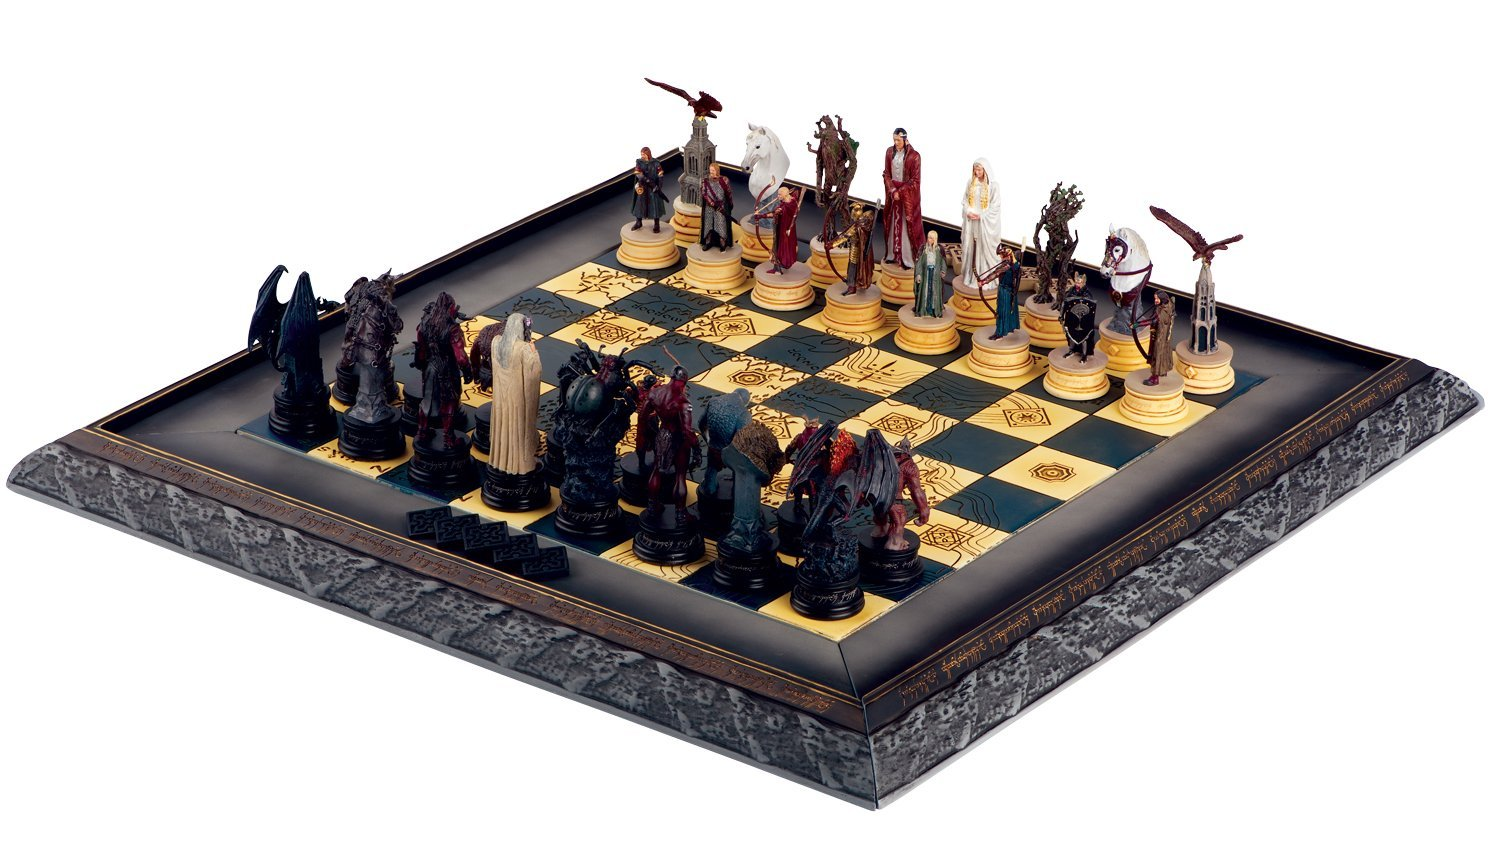 Lord rings chess set for sale only 3 left at 60 - Lord of the rings chess set for sale ...